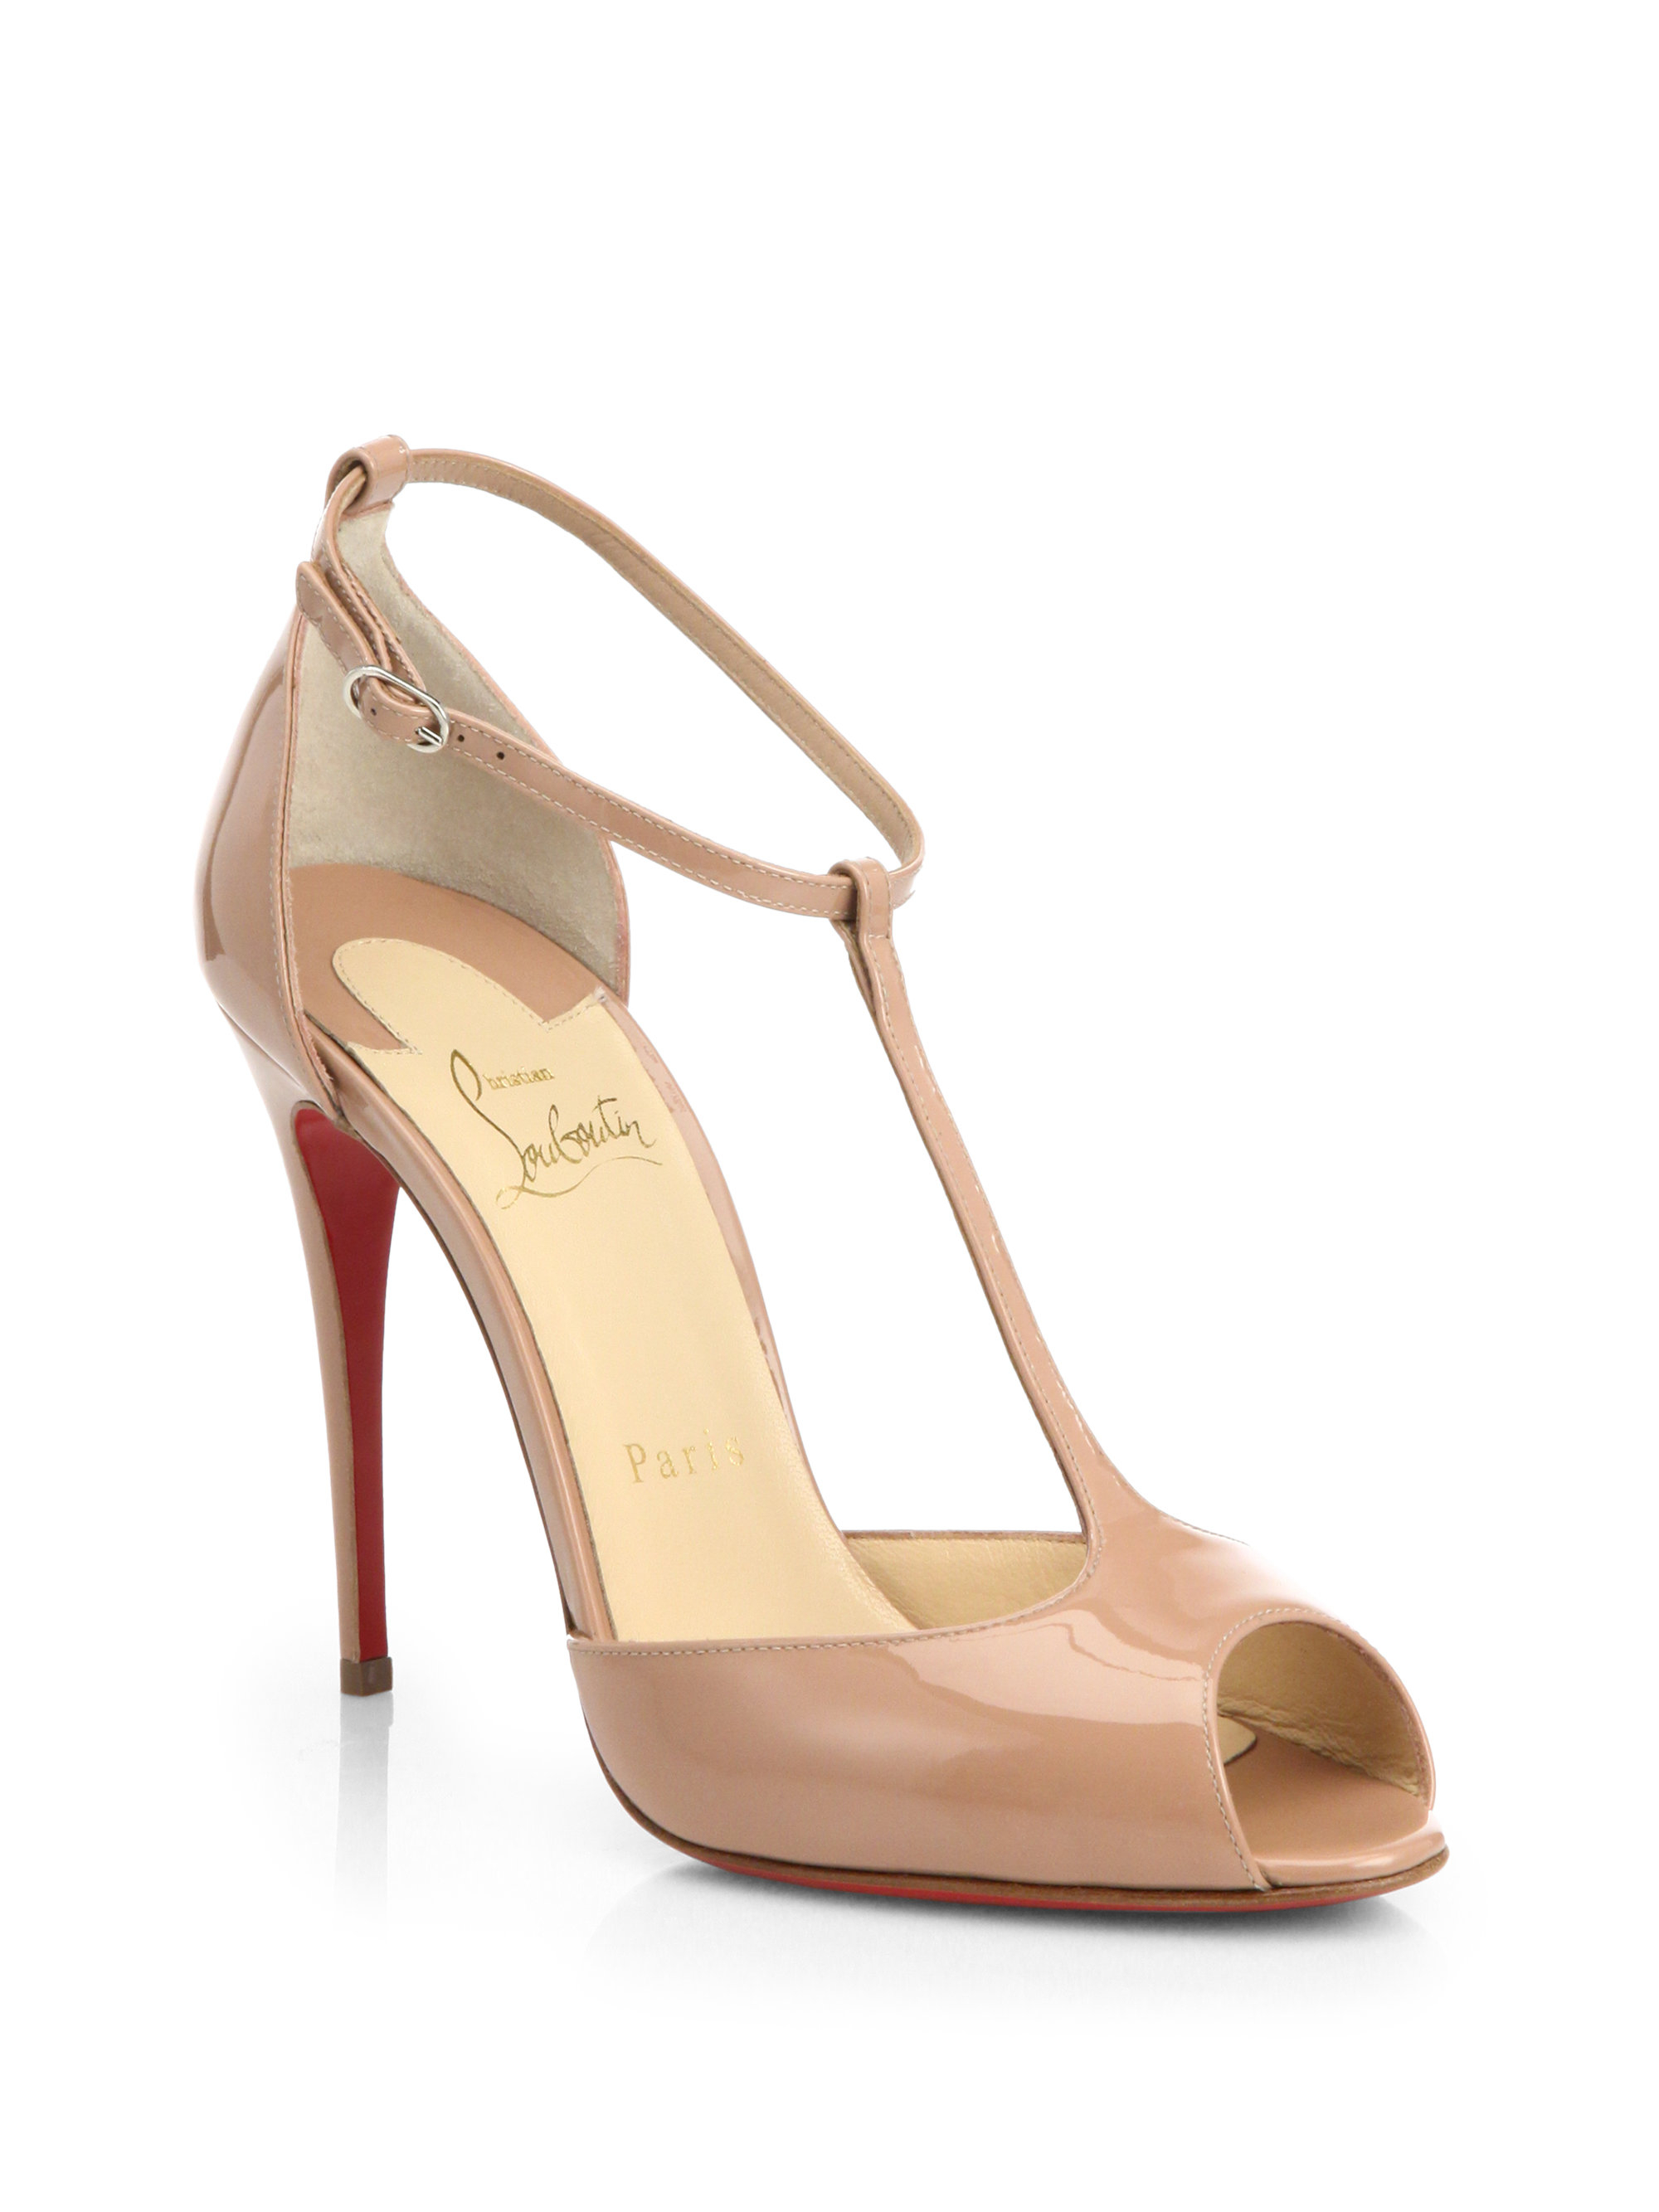 6d0395833fd Gallery. Previously sold at  Saks Fifth Avenue · Women s Christian  Louboutin Senora ...